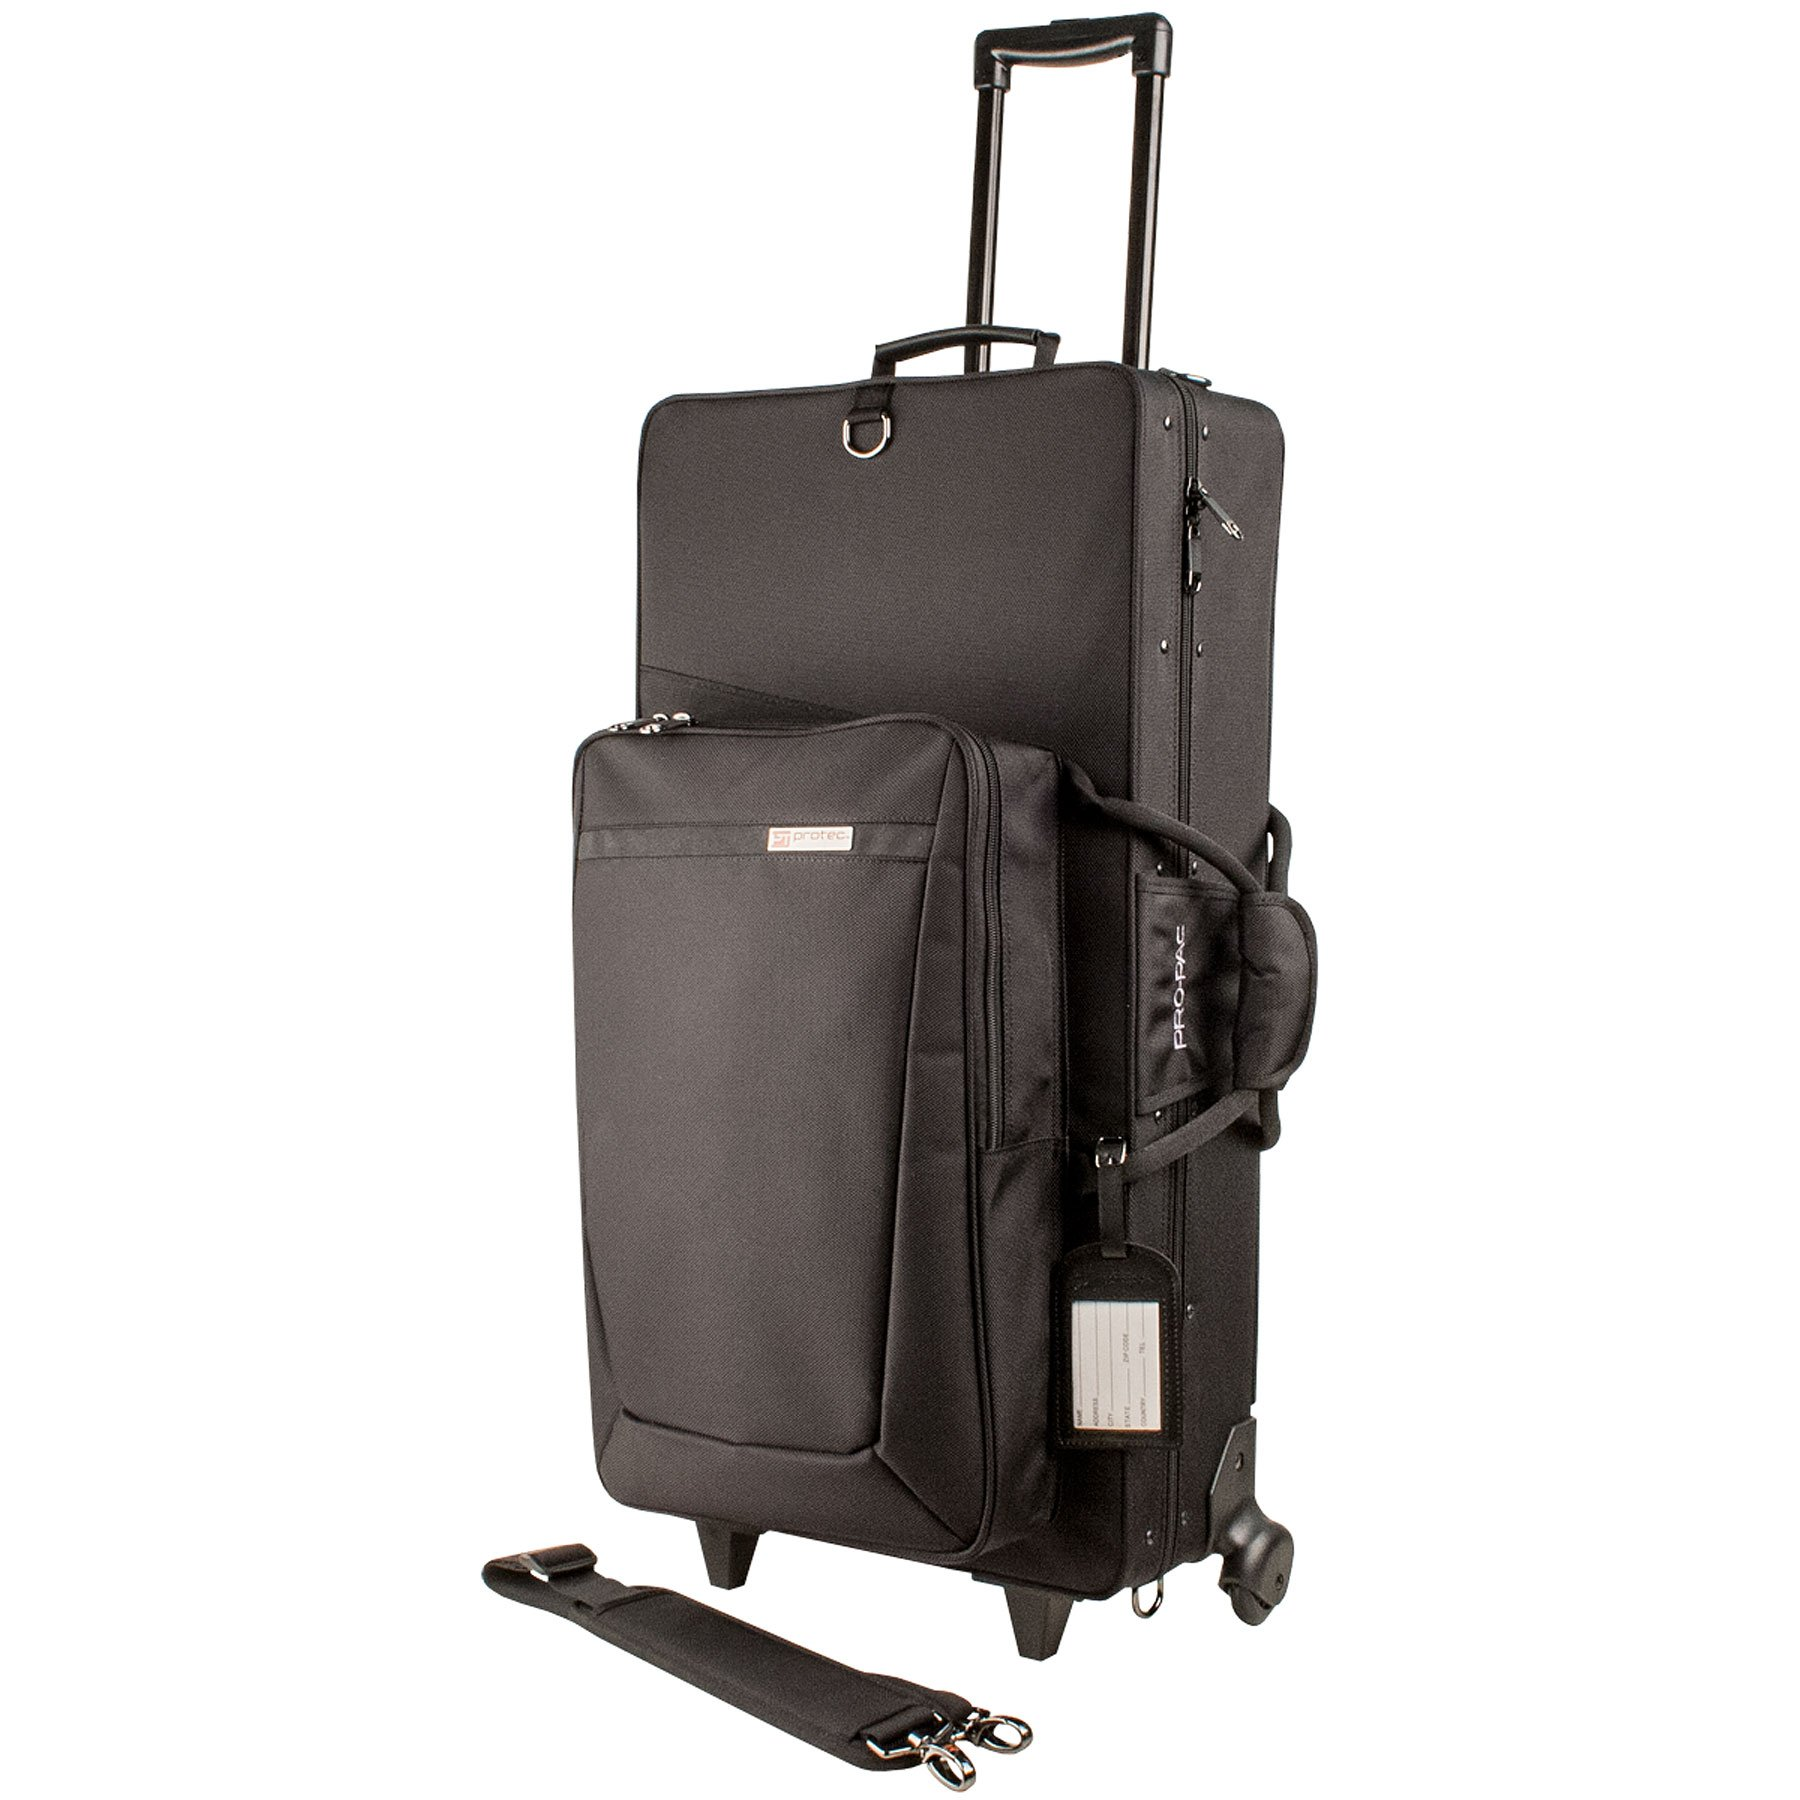 Protec PB304SOPWL Combination PRO PAC Case with Wheels for Alto / Soprano Saxophones